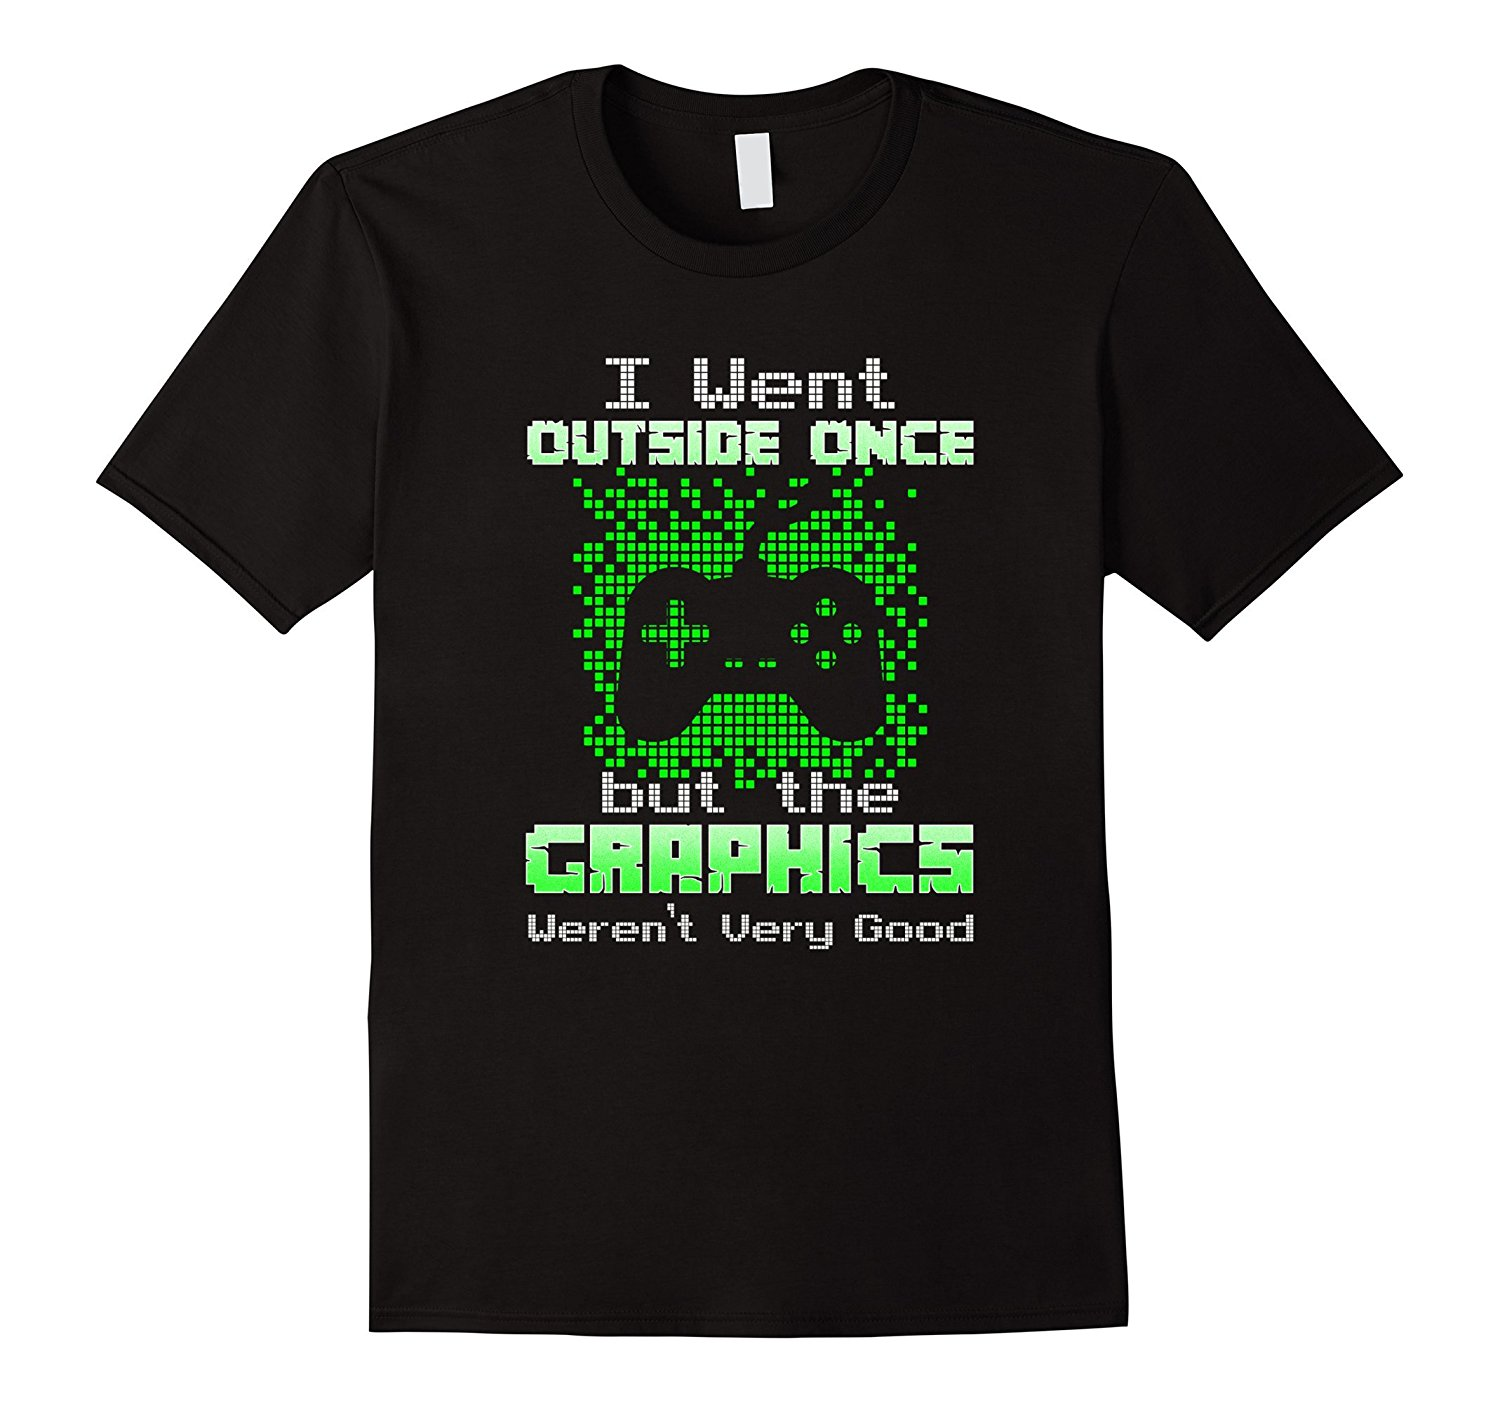 I went Outside Once The Graphics - Video Gaming T-Shirt ...